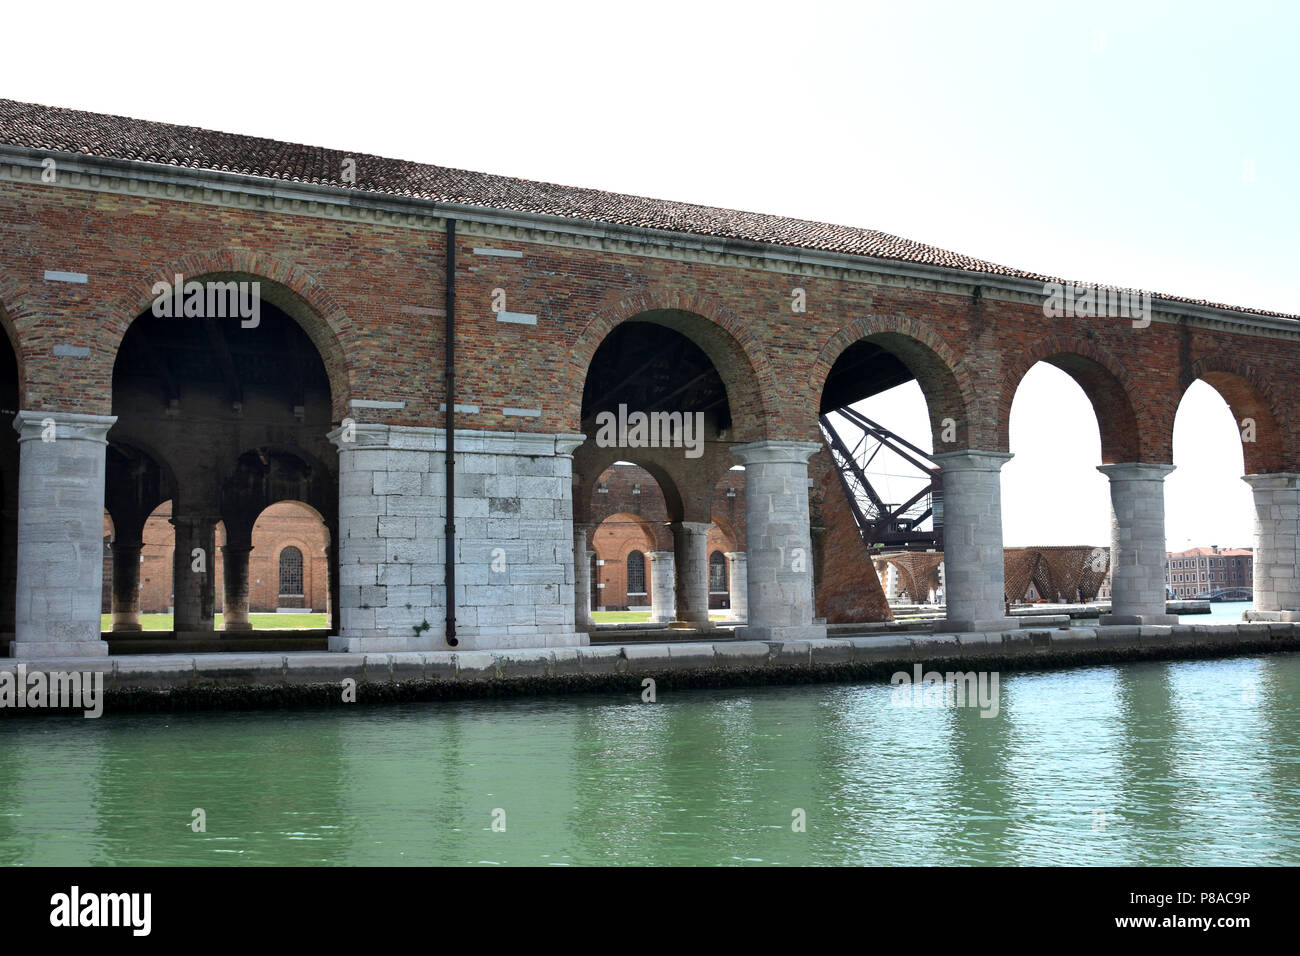 Venice, Castello, Arsenale harbour. View of old buildings from dock of Gaggiandre ,Italy ,Italian. - Stock Image